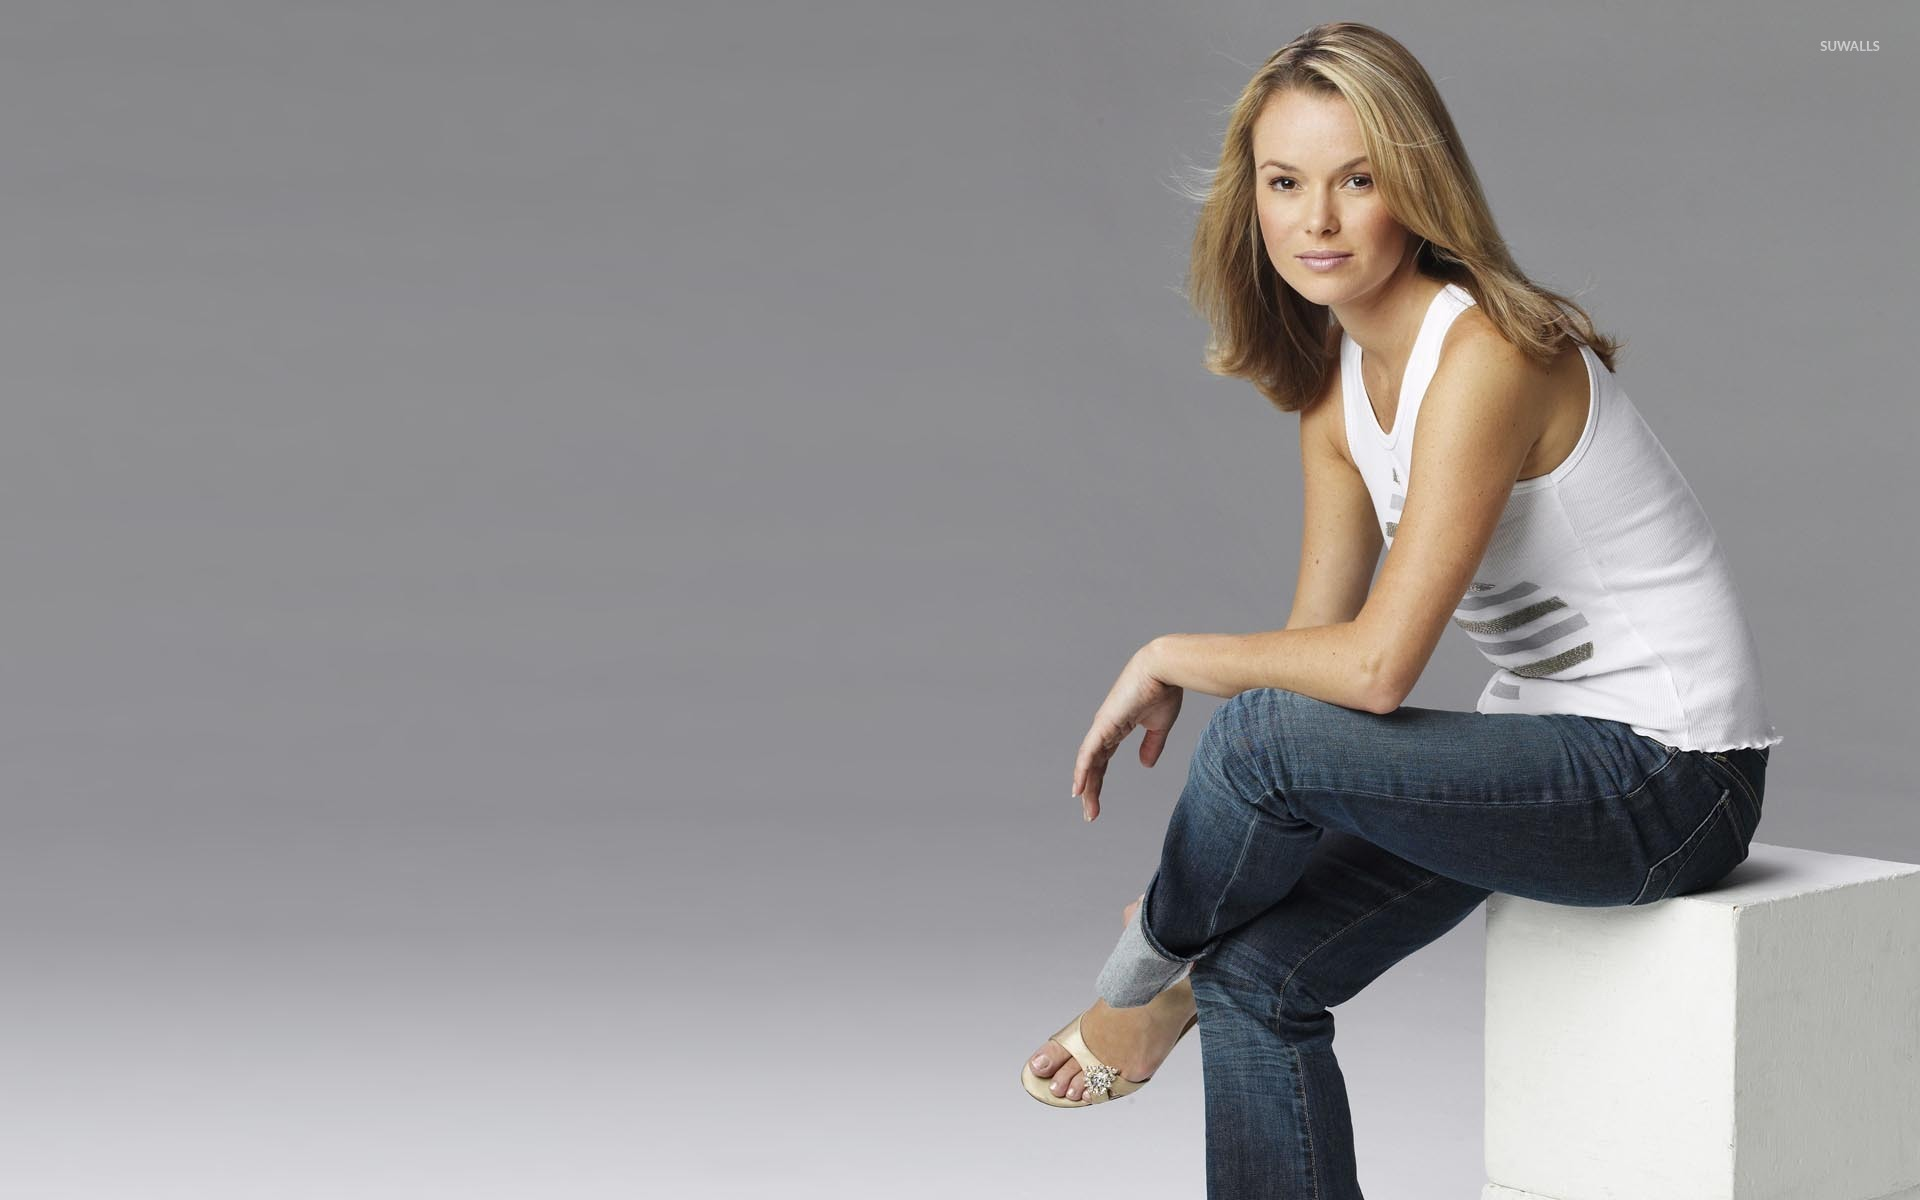 amanda holden wallpaper palm - photo #5